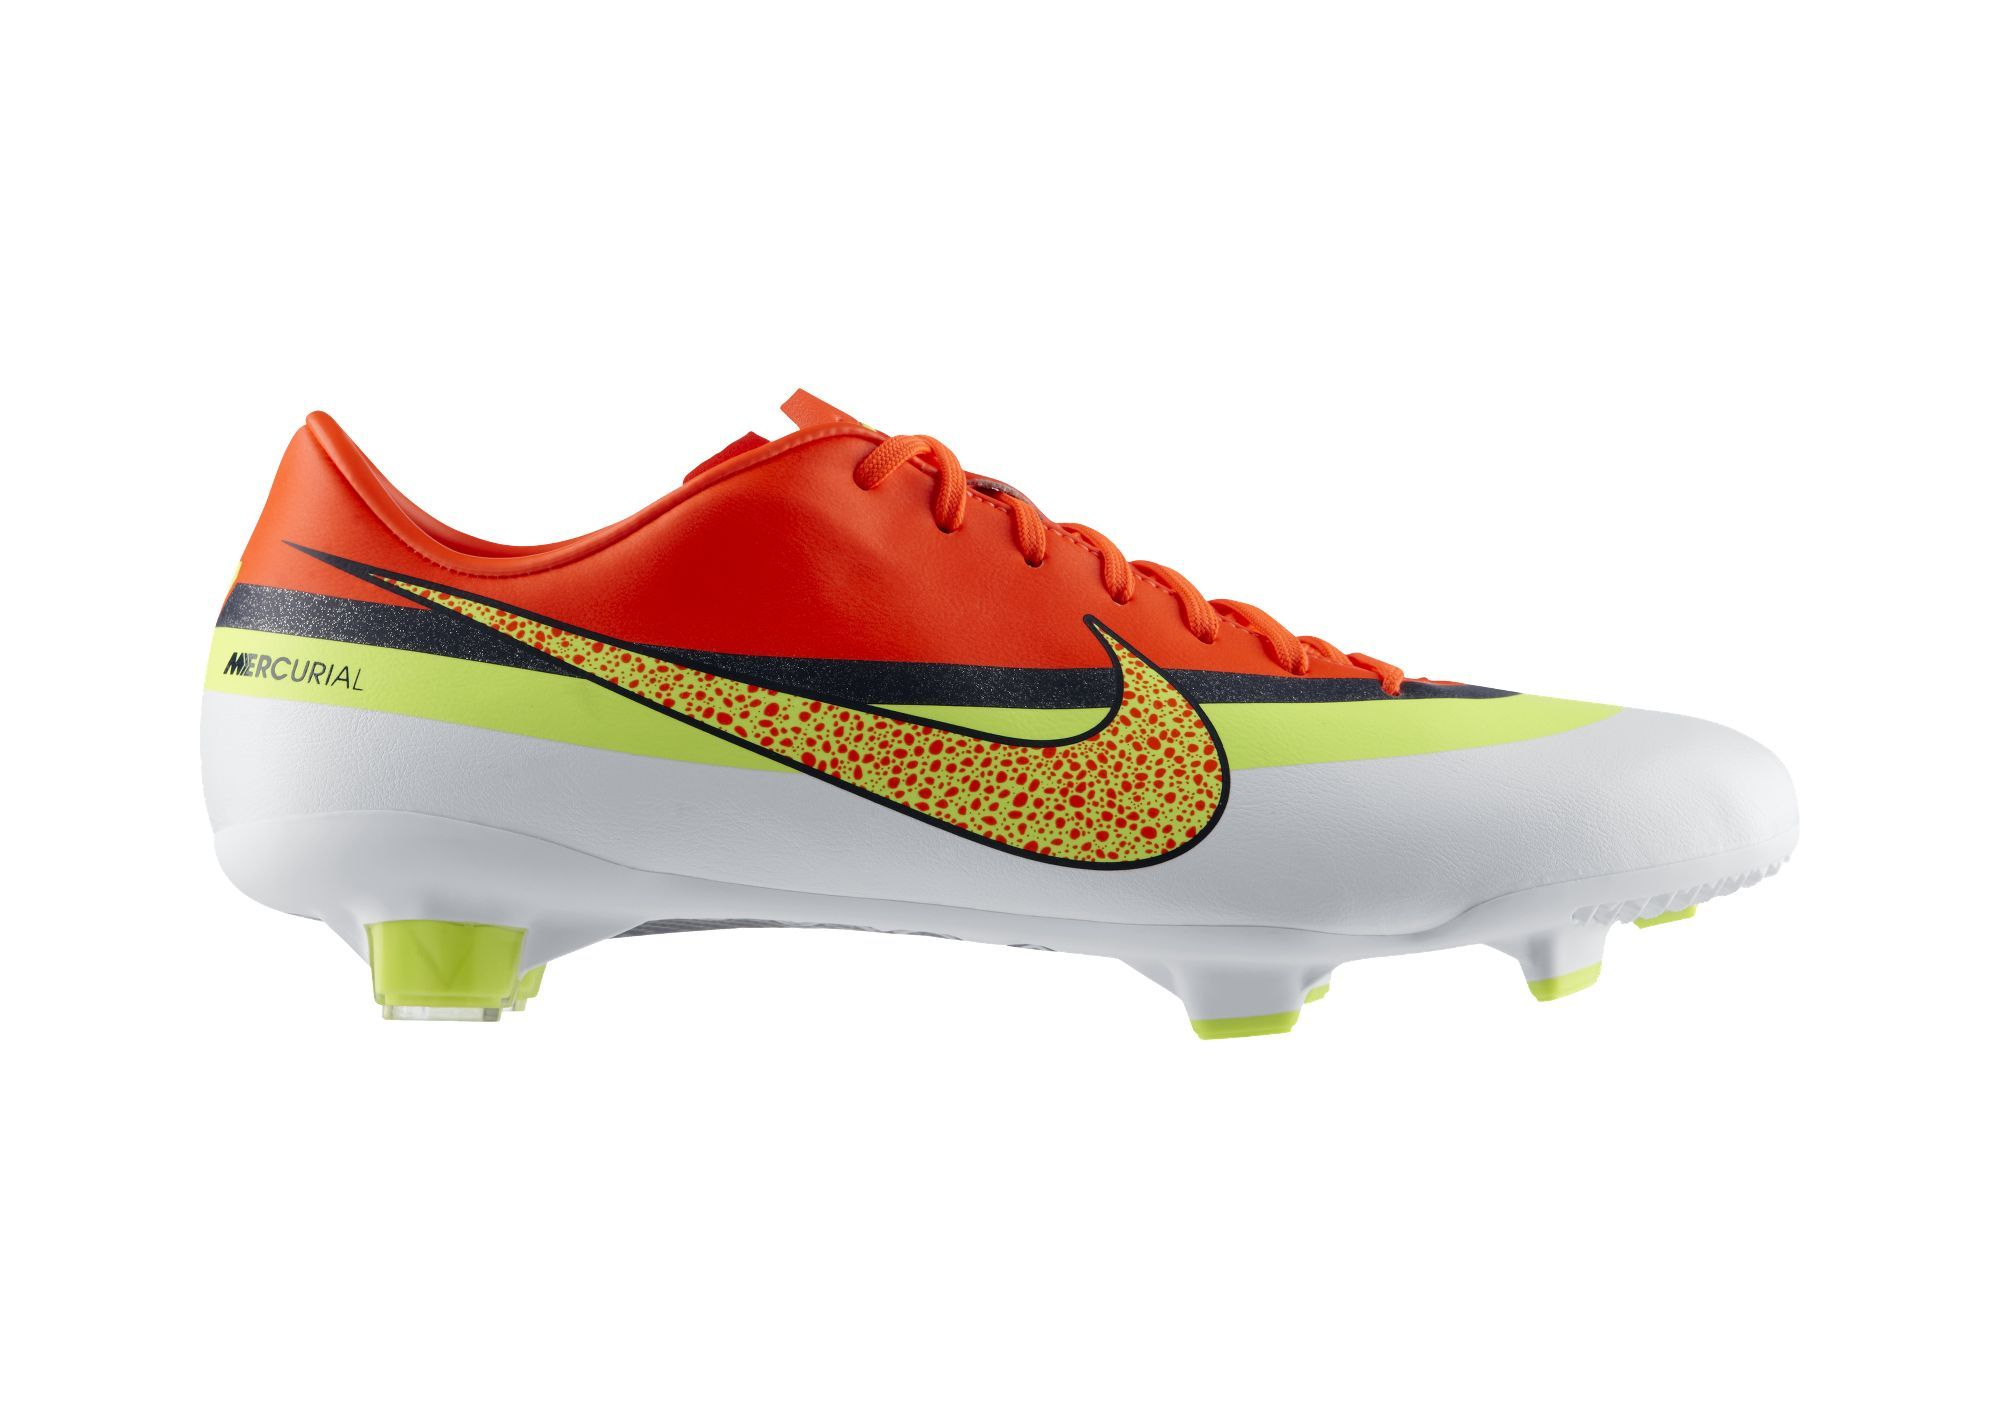 Nike Mercurial Veloce CR Mens Firm-Ground Soccer Cleat